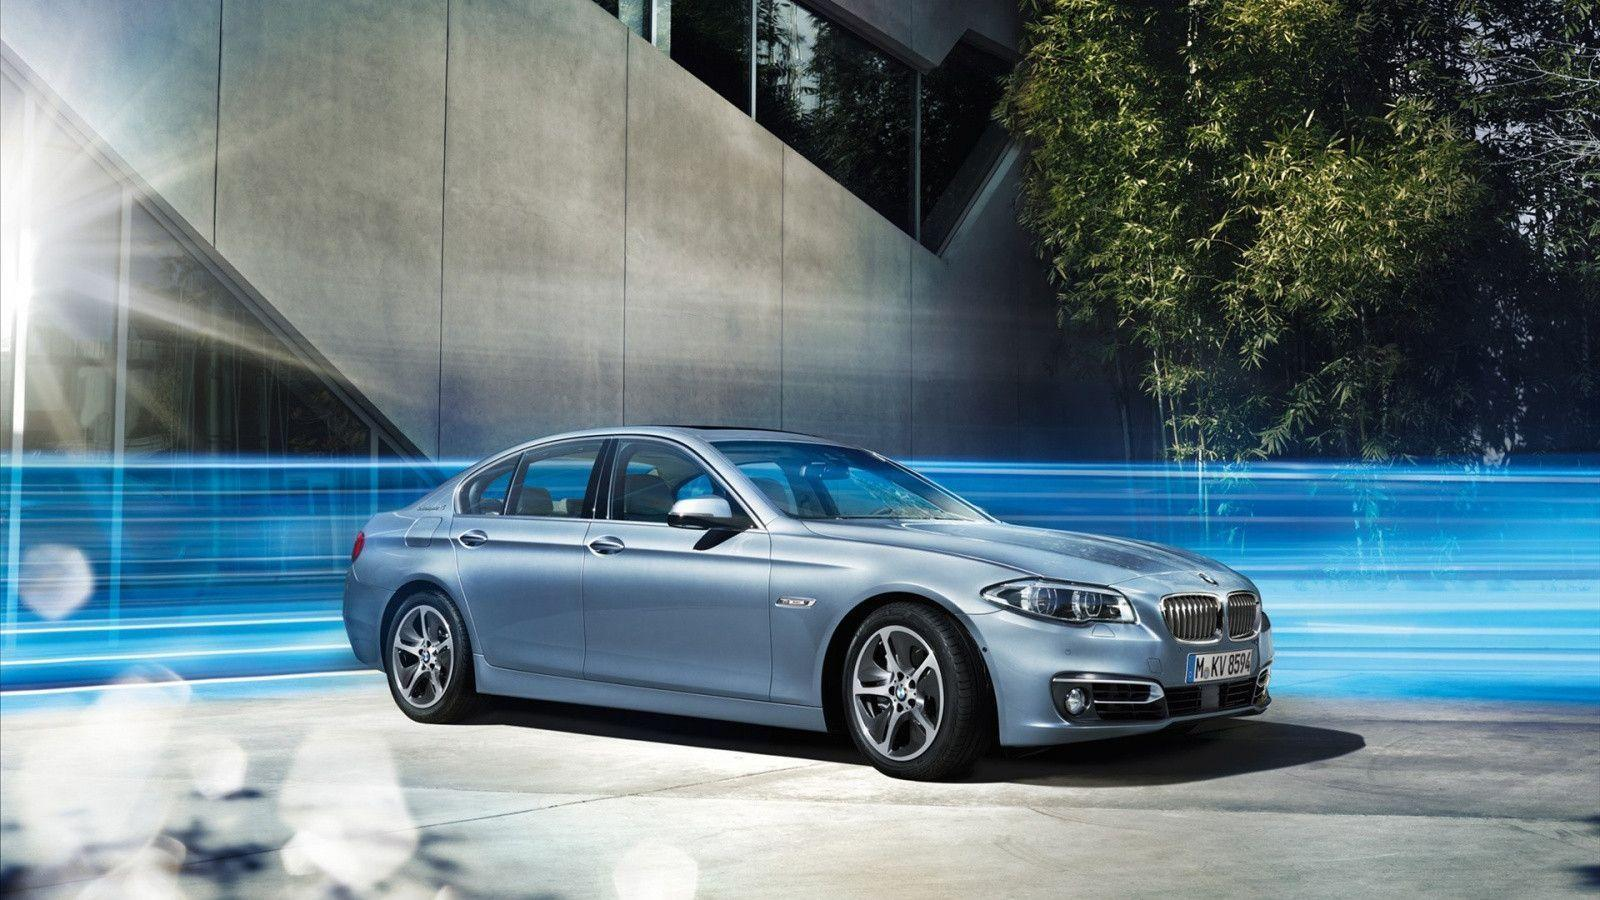 2014 Bmw M5 Wallpapers